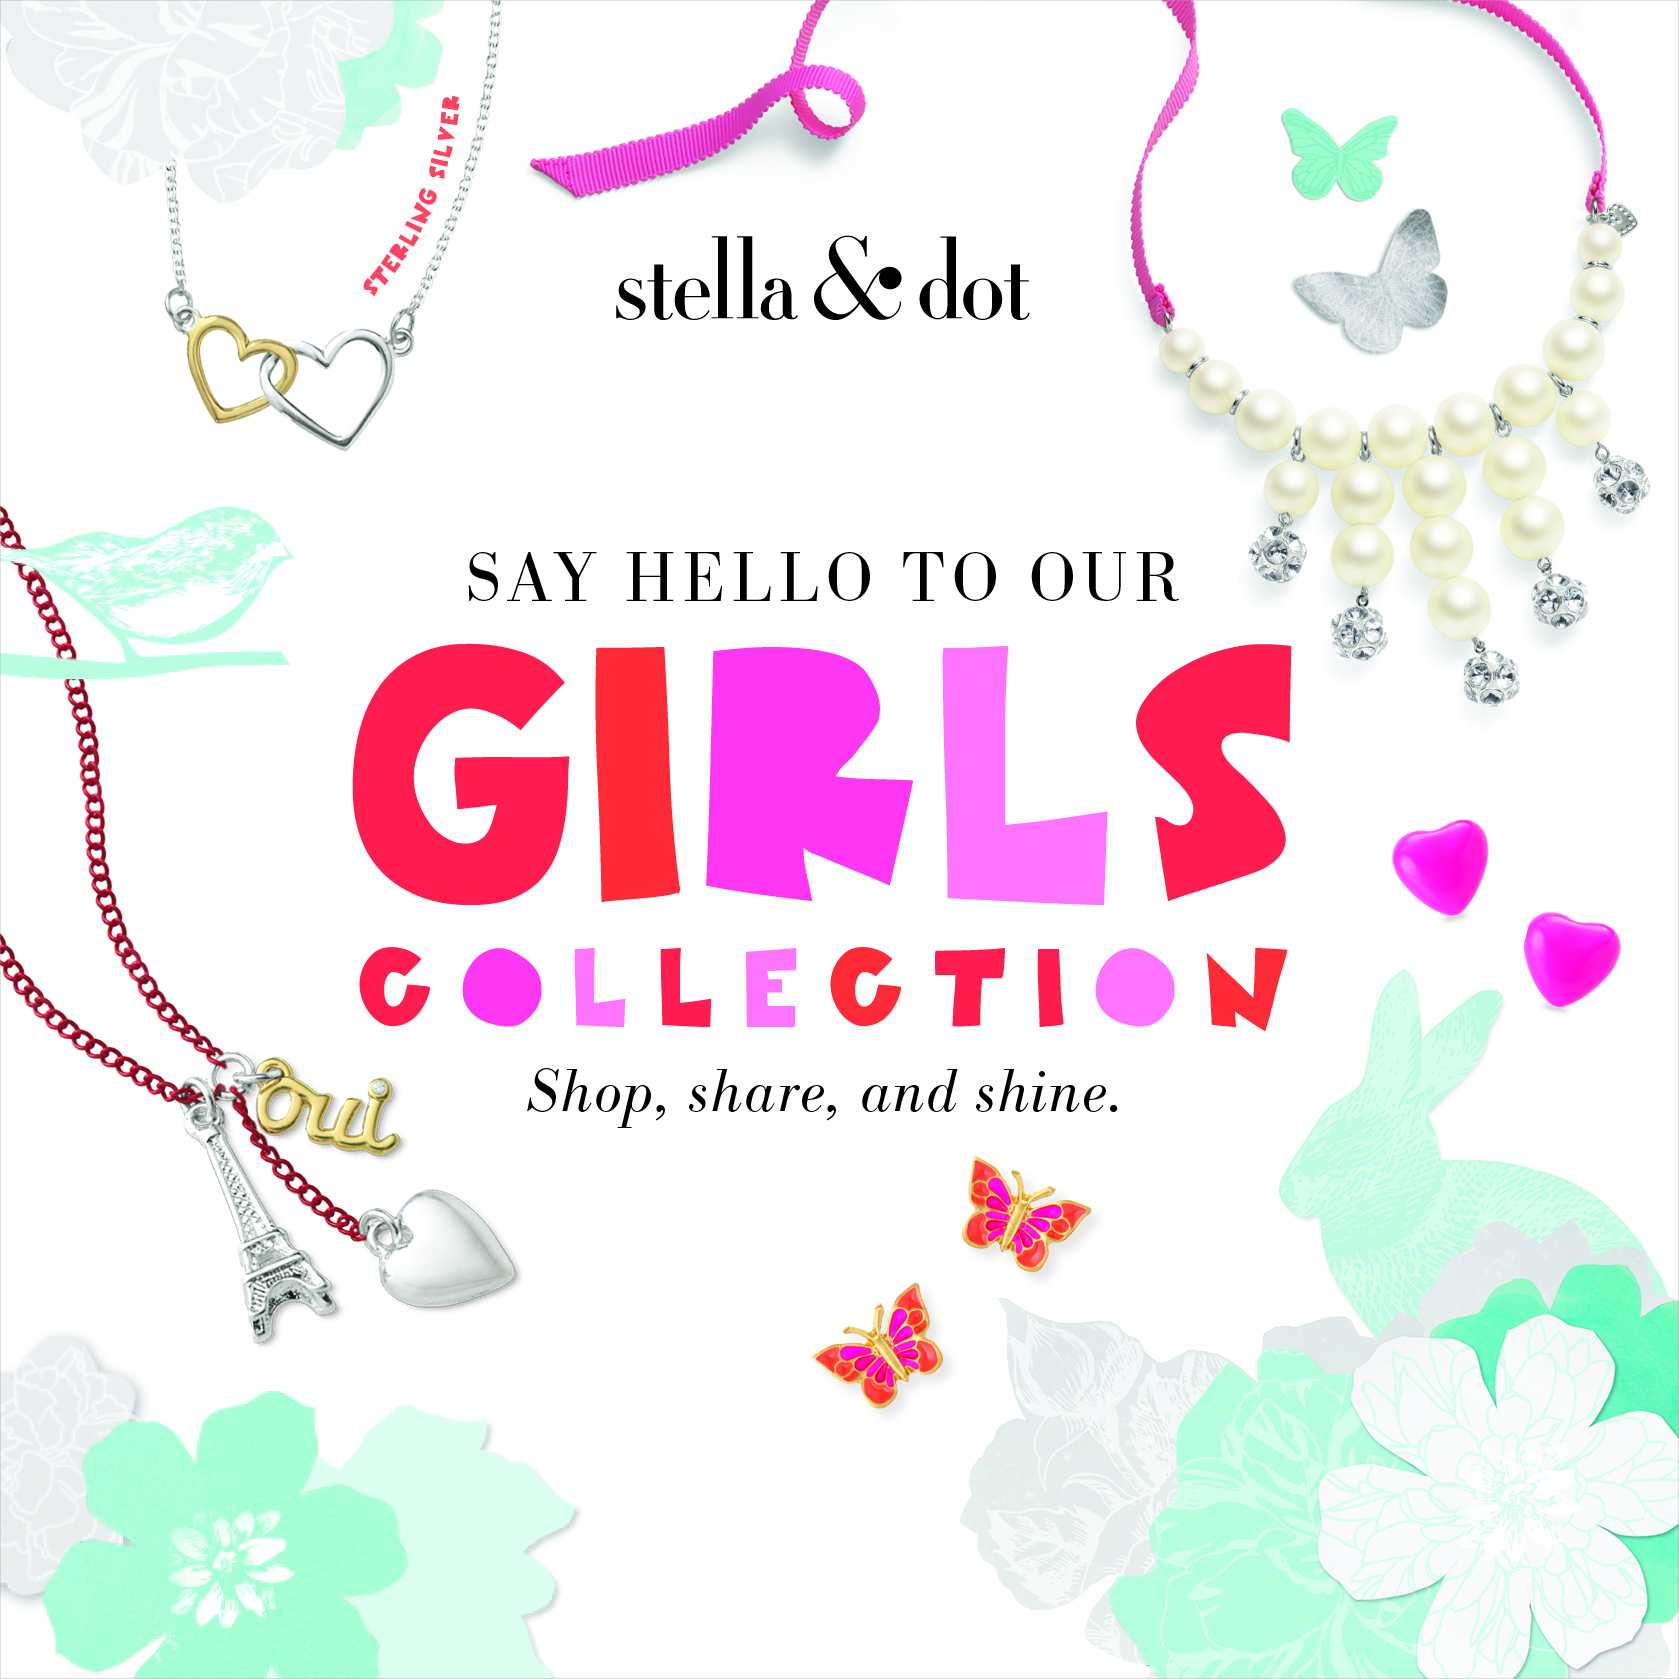 https://i0.wp.com/com.stelladot.stylists.s3.amazonaws.com/images/Lounge%202013/August/LittleGirls.jpg